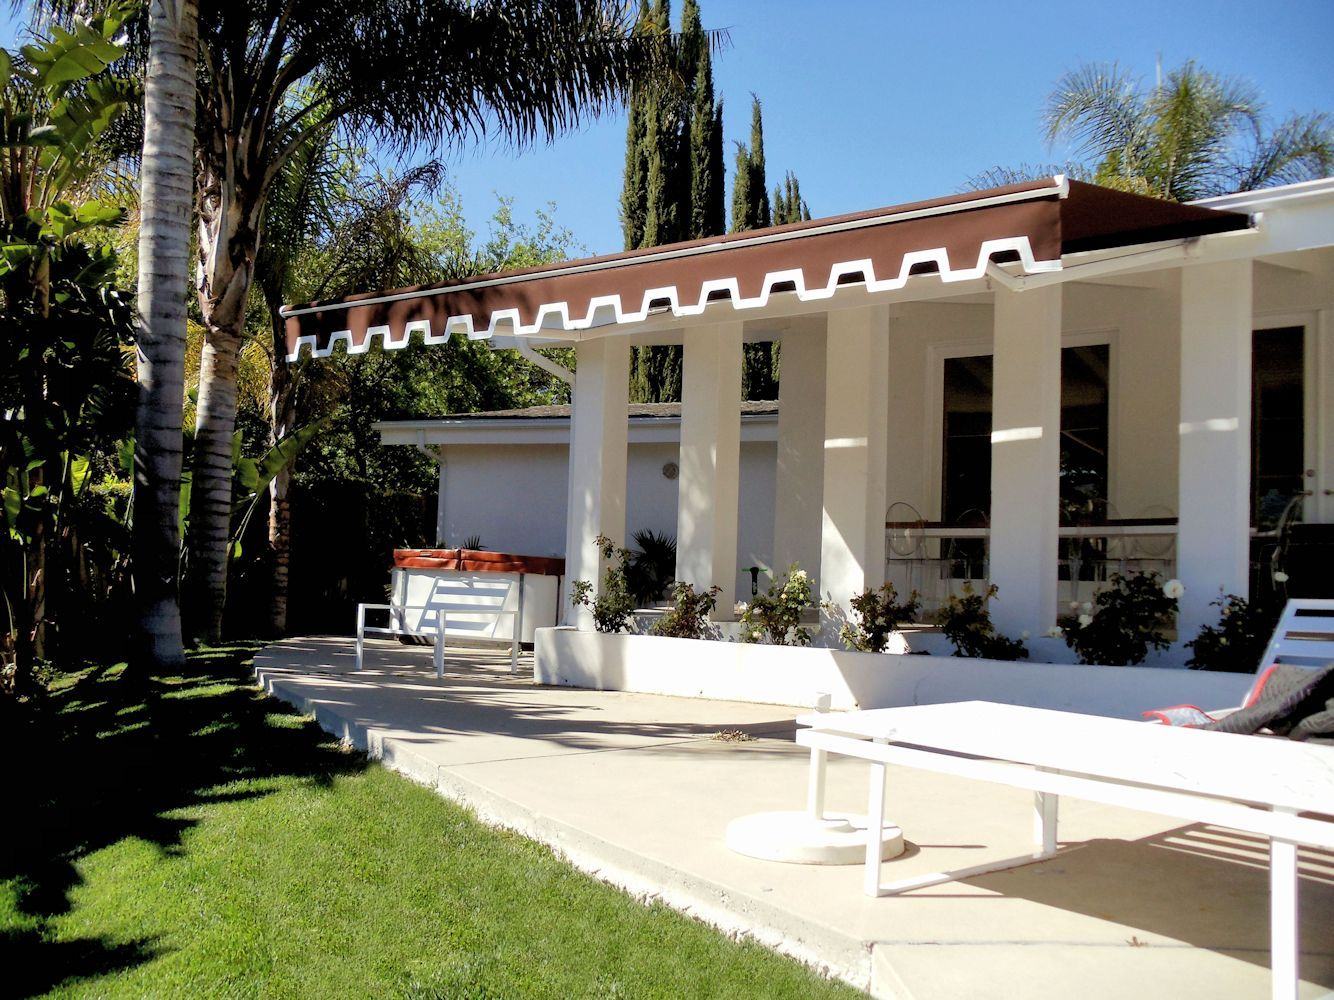 Retractable Awnings By Superior Awning Let The Sun Shine Patio Retractable Awning Awning Shade